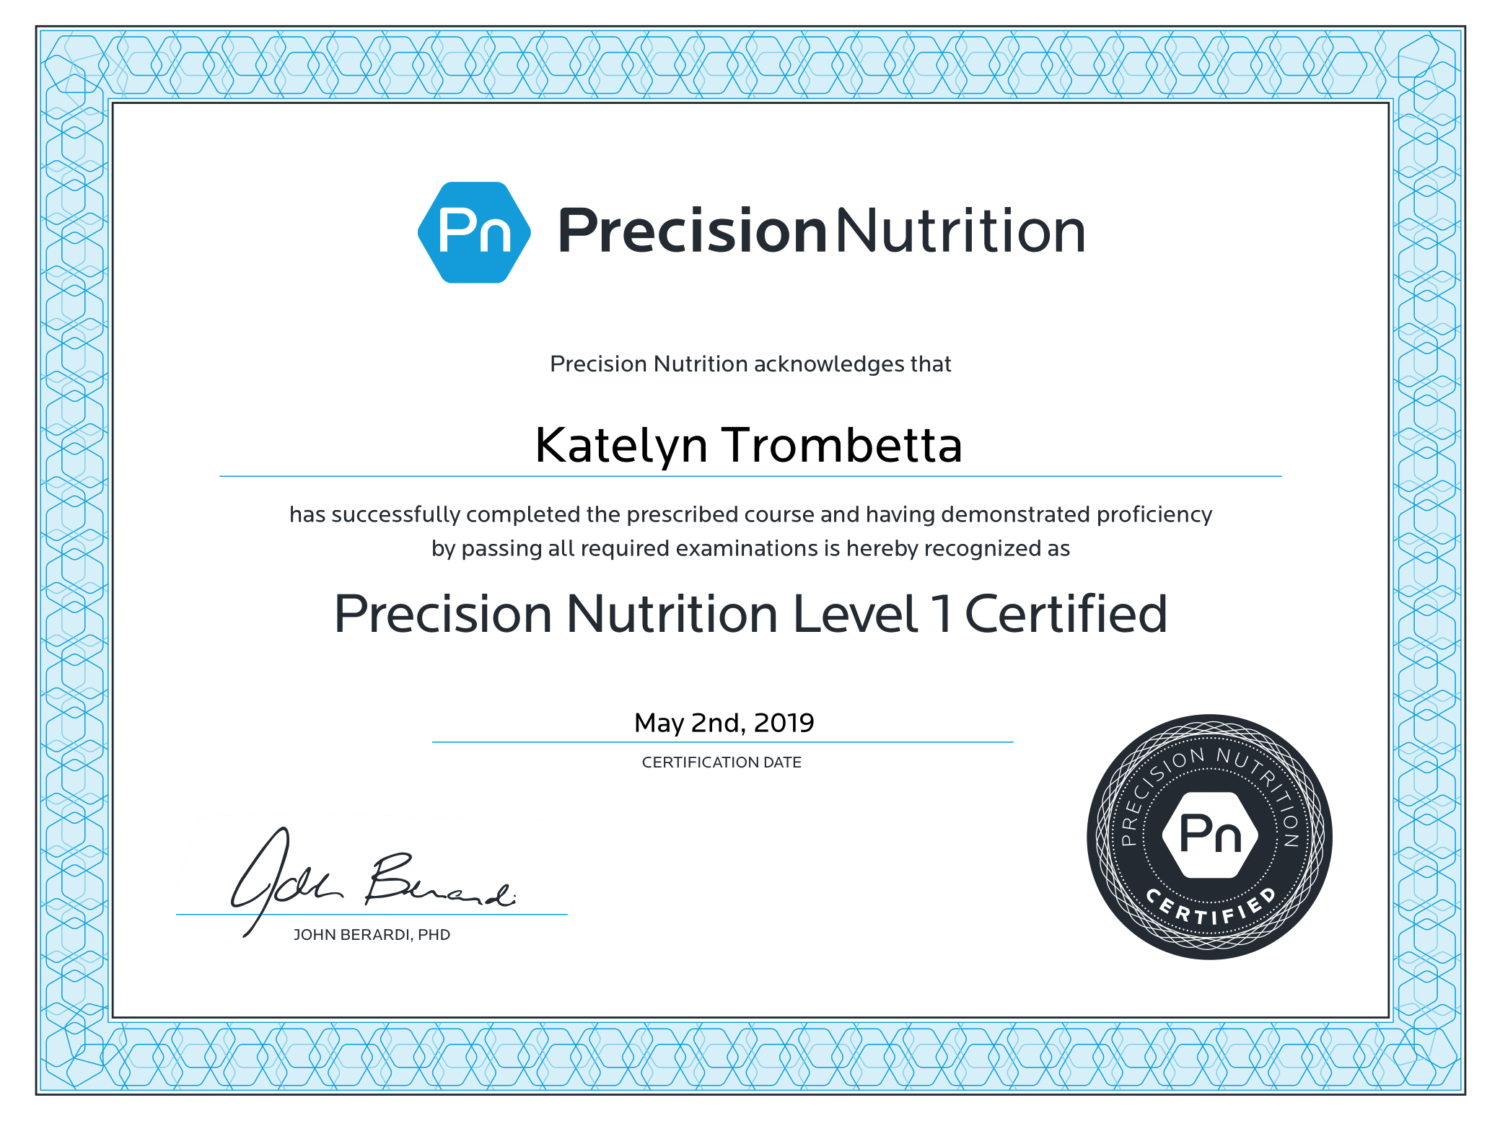 Precision Nutrition Certification Profectus Performance Edwardsville IL